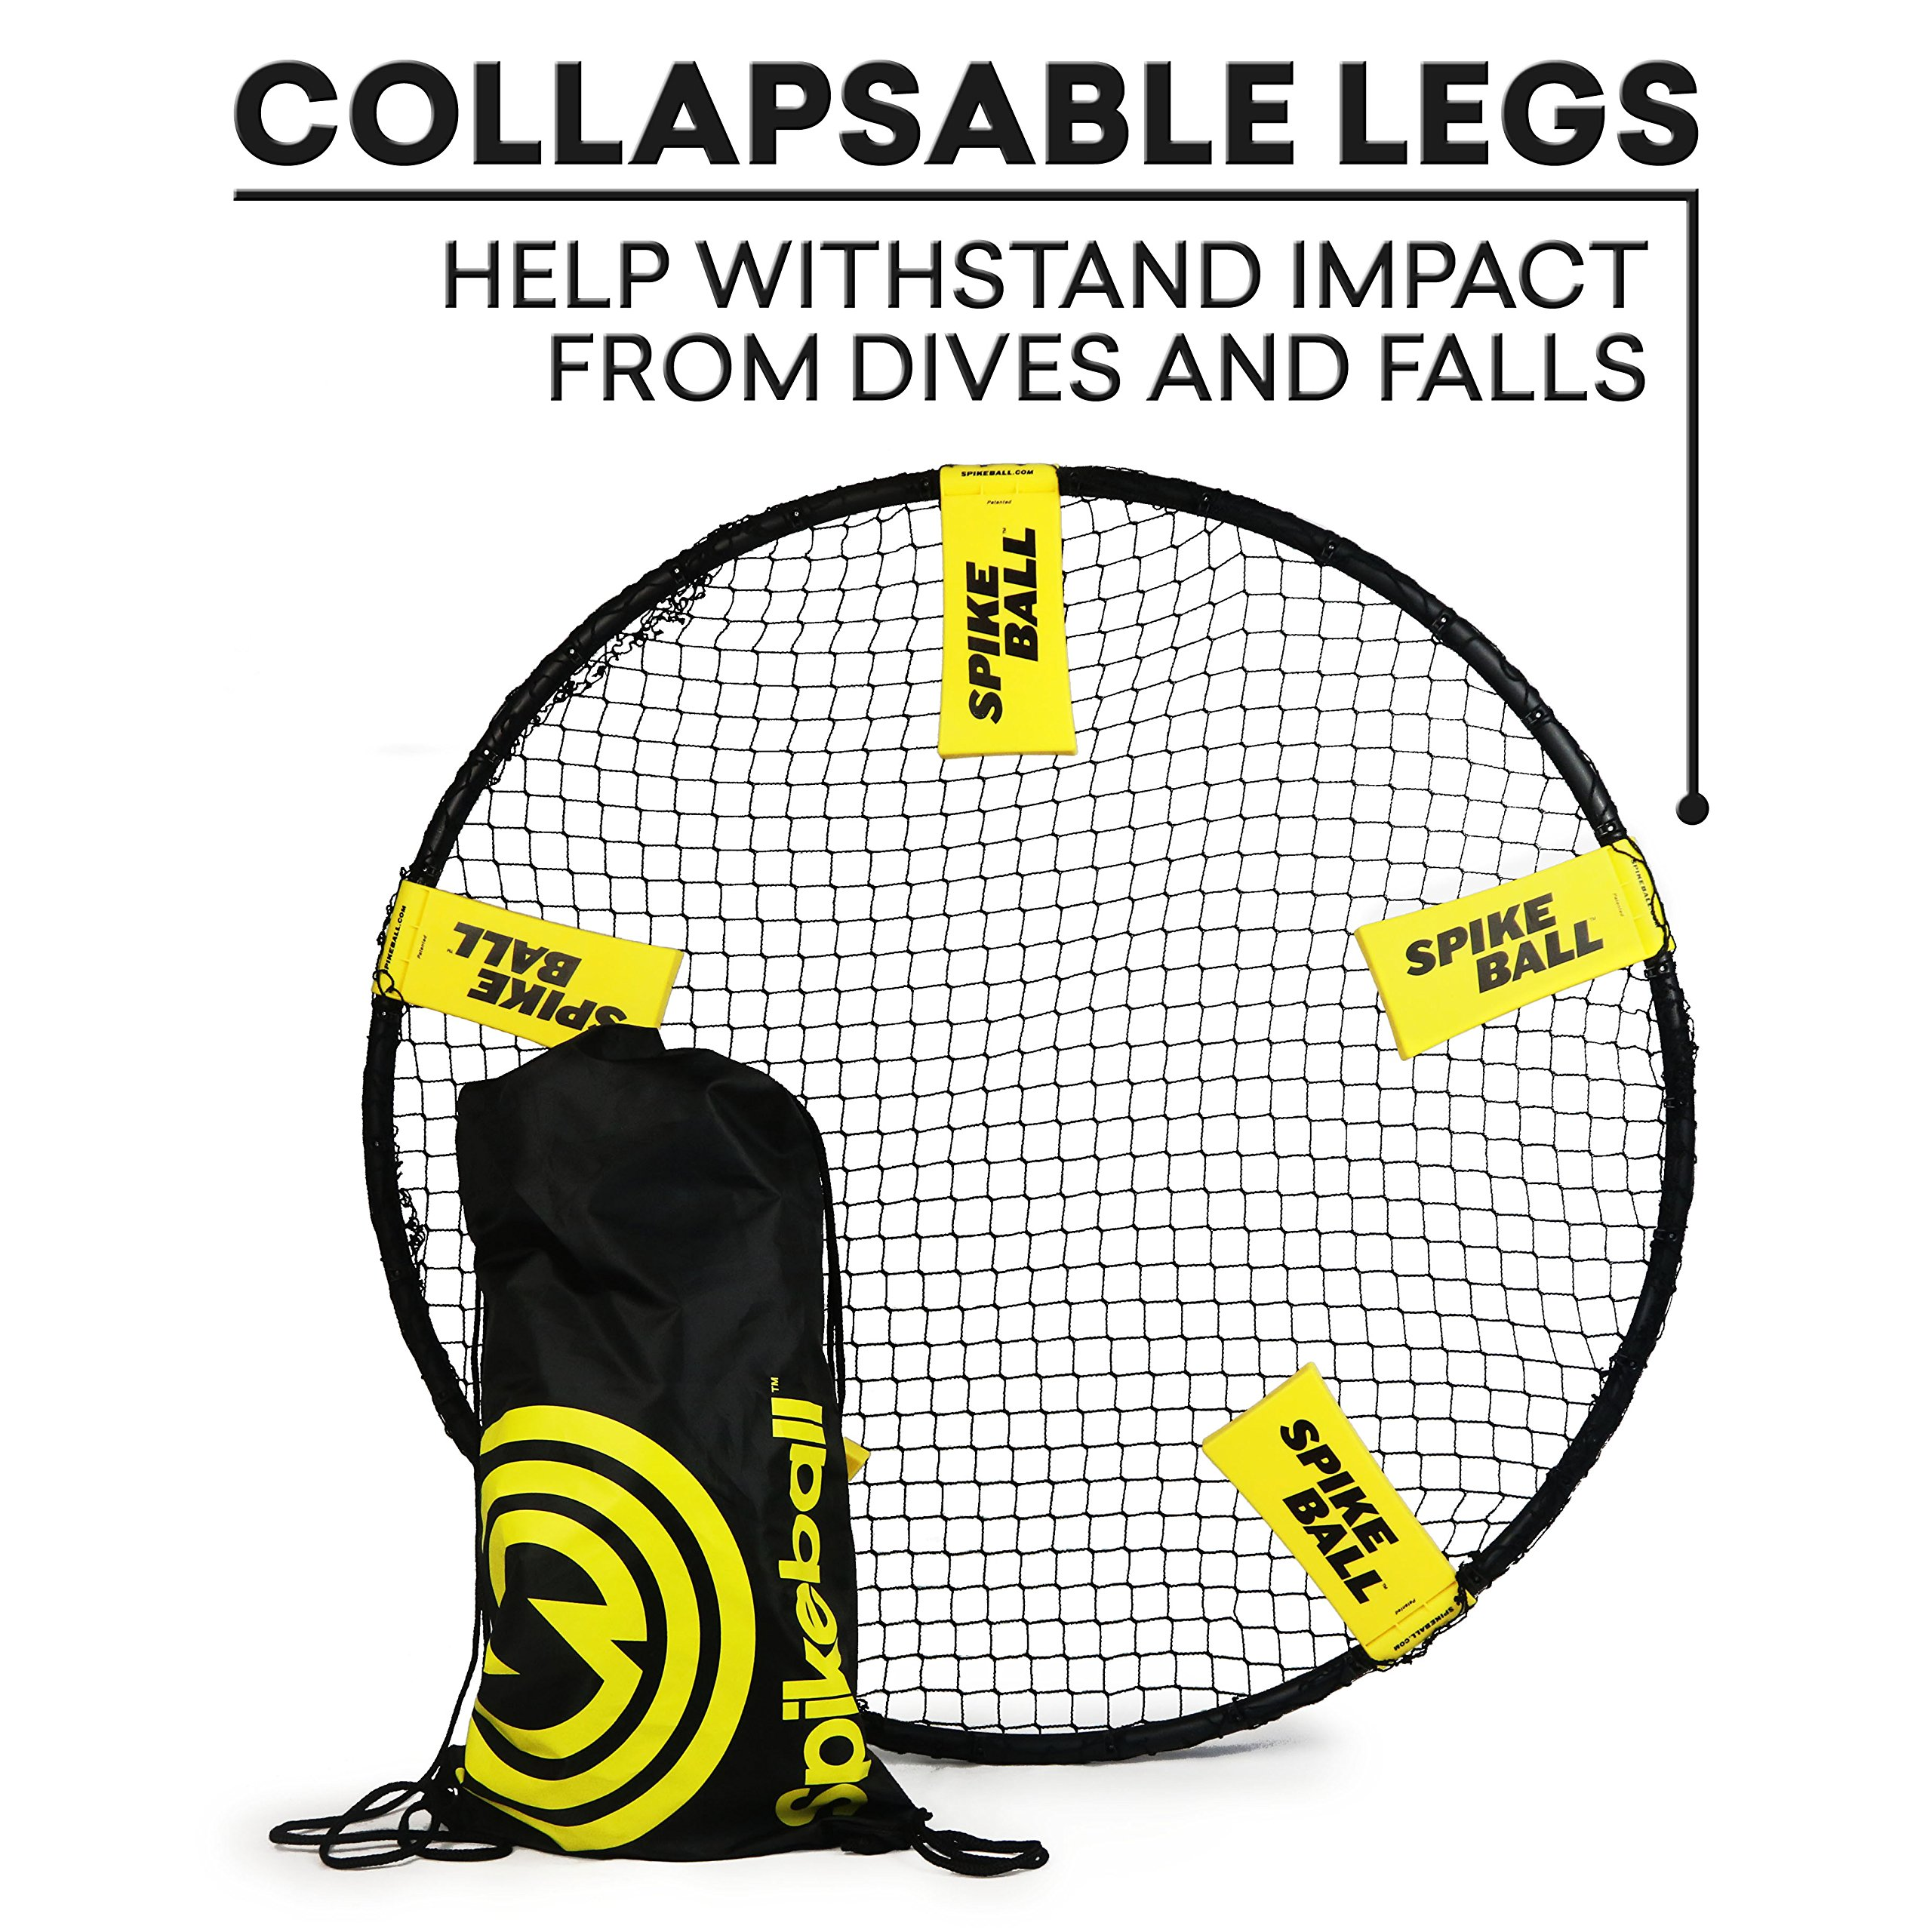 Spikeball 3 Ball Sports Game Set - Outdoor Indoor Gift for Teens, Family - Yard, Lawn, Beach, Tailgate - Includes Playing Net, 3 Balls, Drawstring Bag, Rule Book- As Seen on Shark Tank (3 Ball Set) by Spikeball (Image #4)